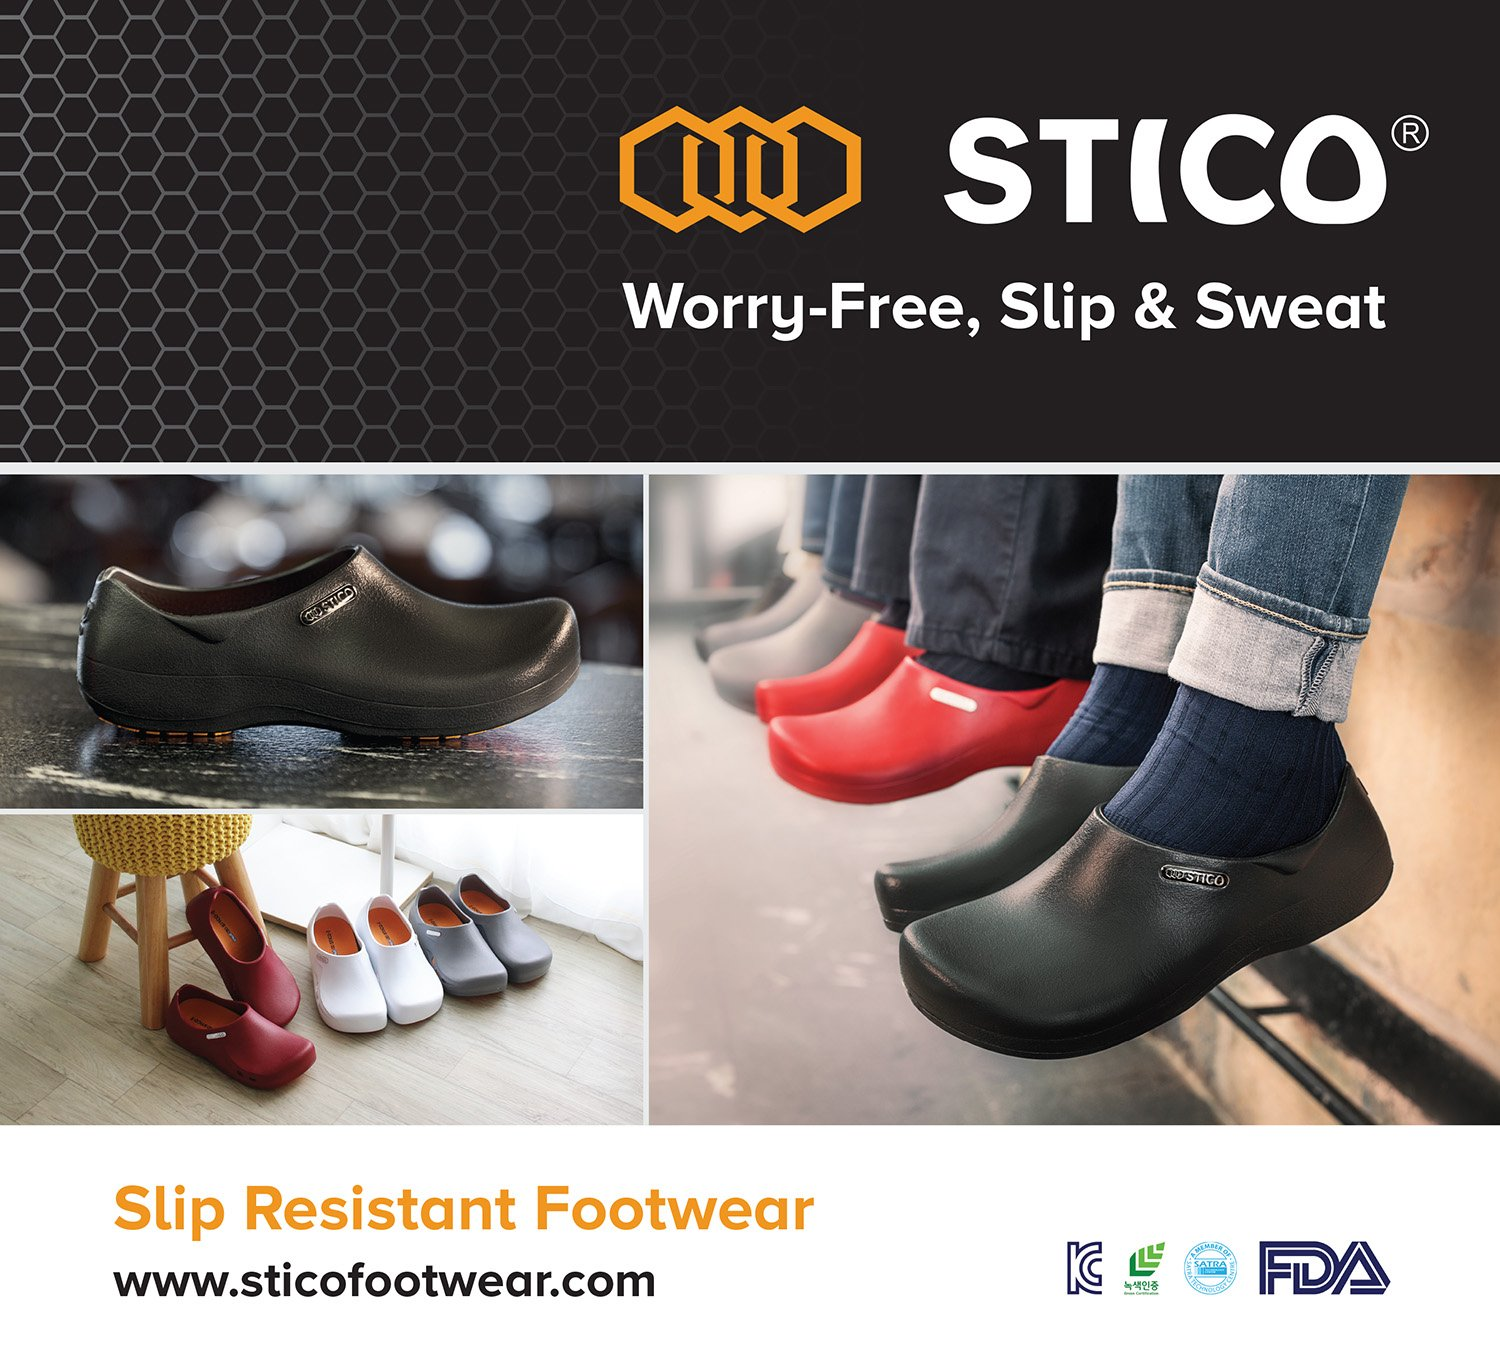 STICO Slip Resistance Shoes for Chef and Nurse NEC-03 M10-10.5 (US) W11-11.5